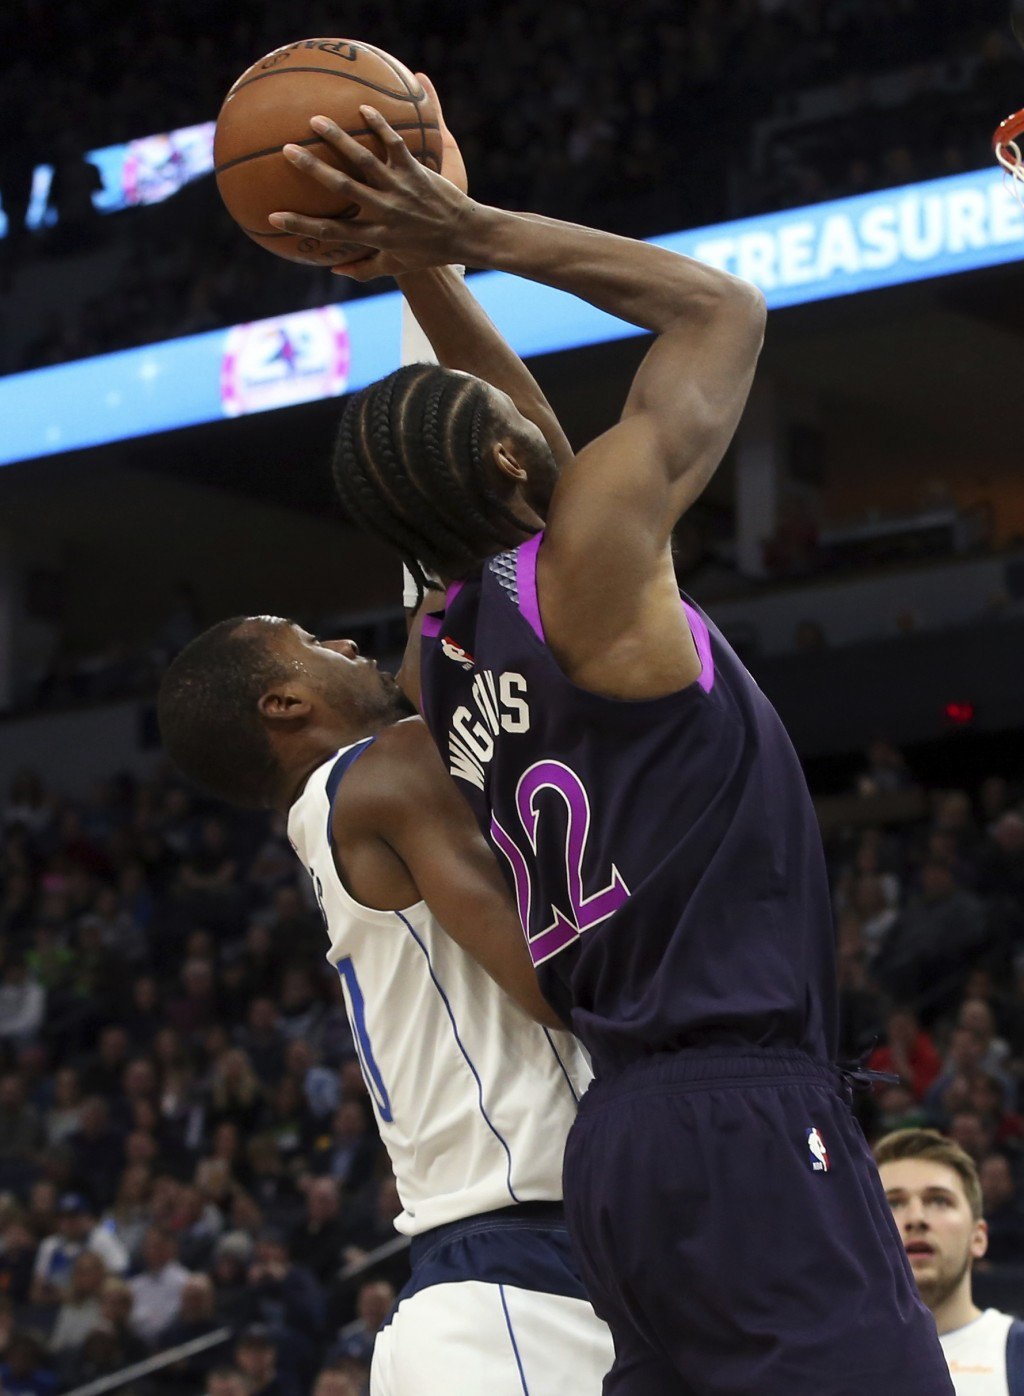 Minnesota Timberwolves' Andrew Wiggins, right, shoots as Dallas Mavericks' Harrison Barnes defends against him in the first half of an NBA basketball